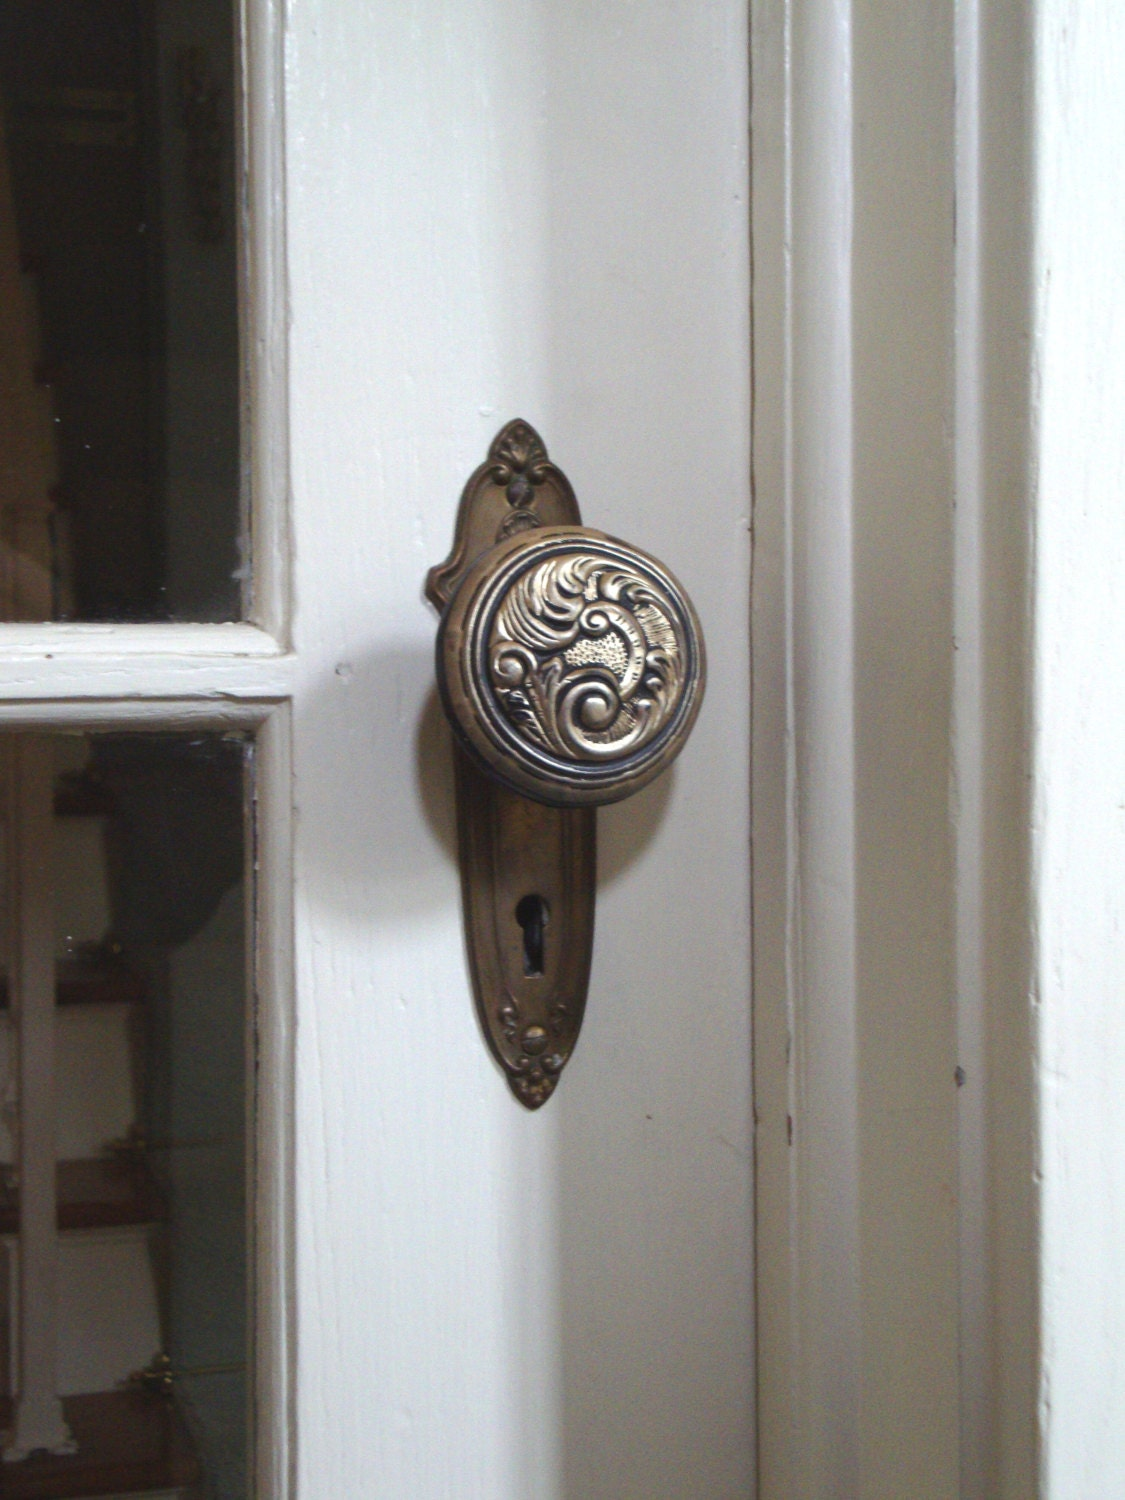 Vintage Doorknob Cover Rubber Stopper Vinyl Scrolly